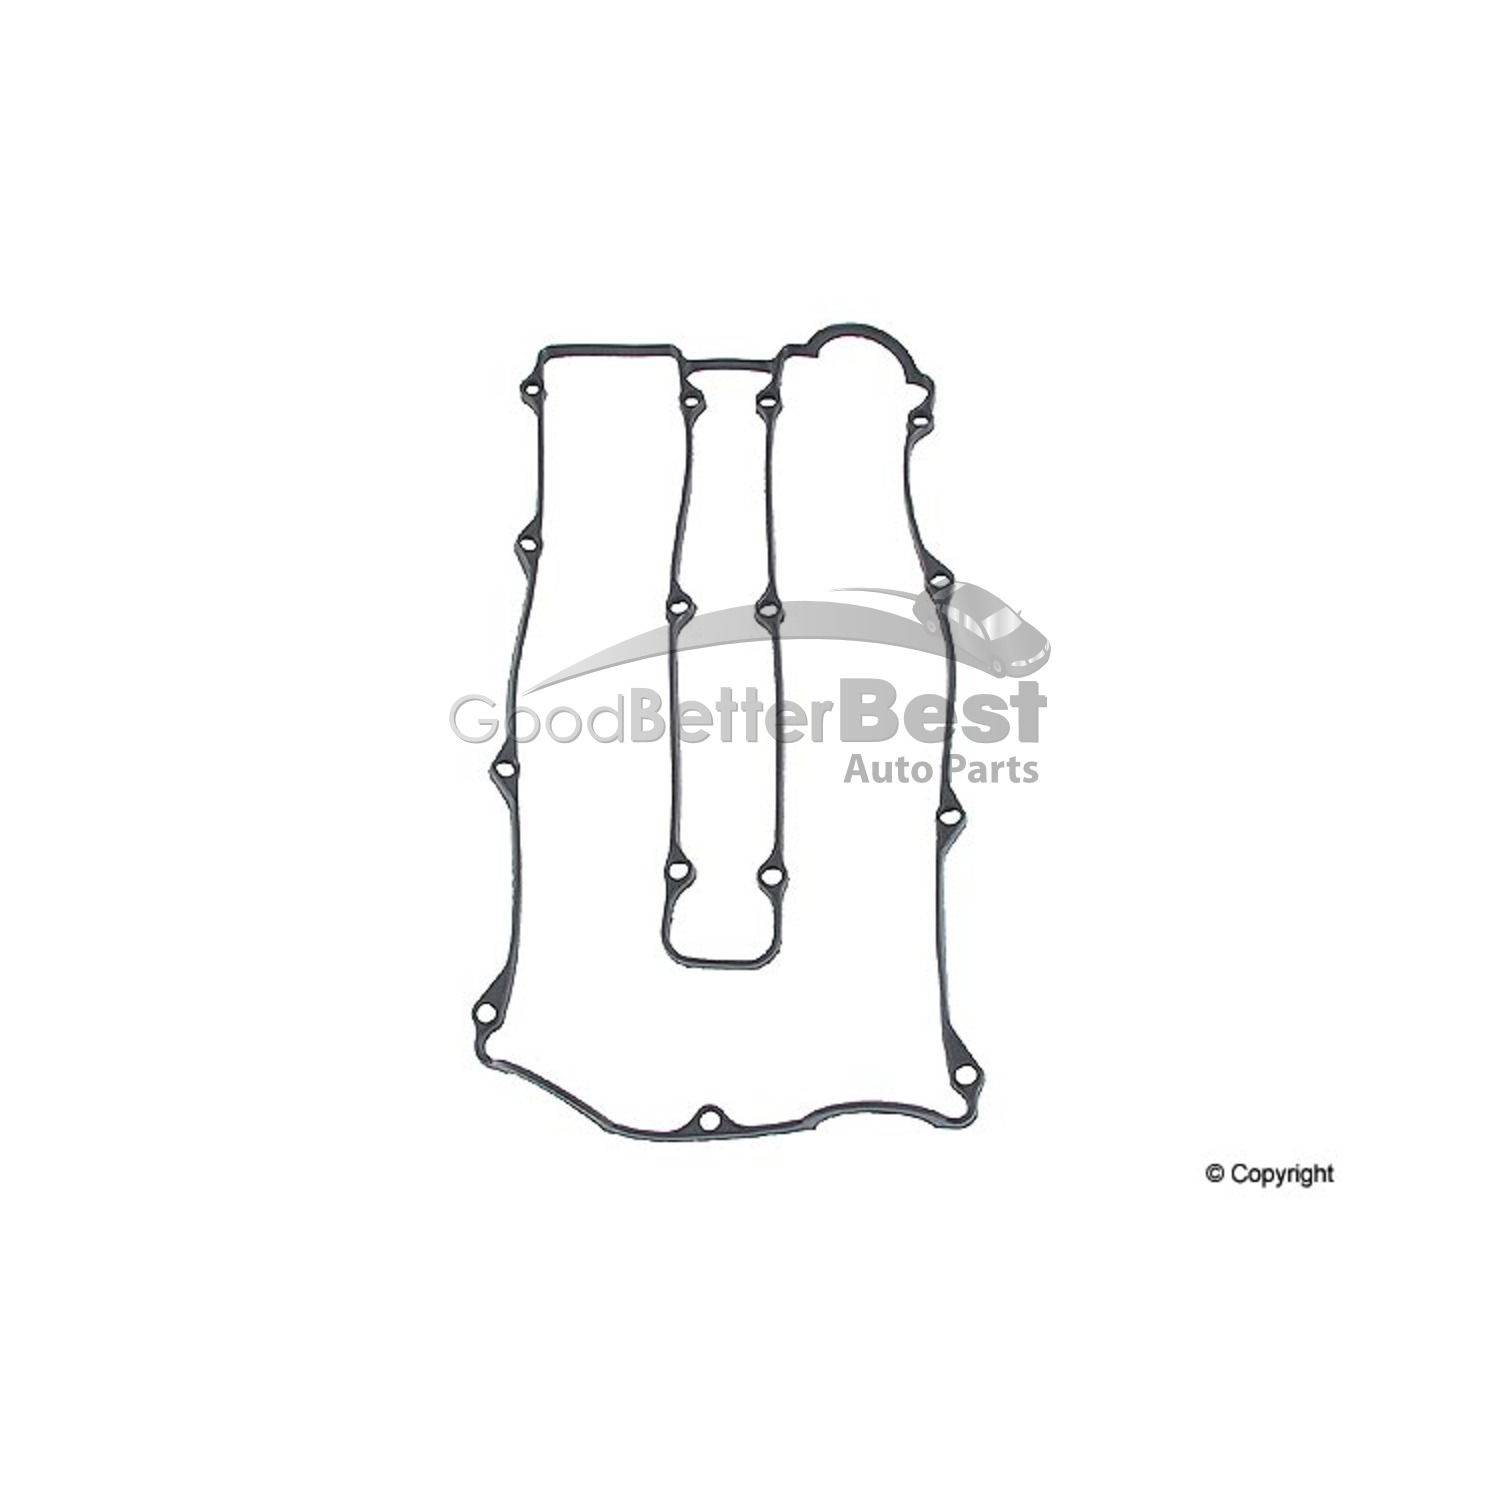 One New Parts Mall Engine Valve Cover Gasket P1gb015